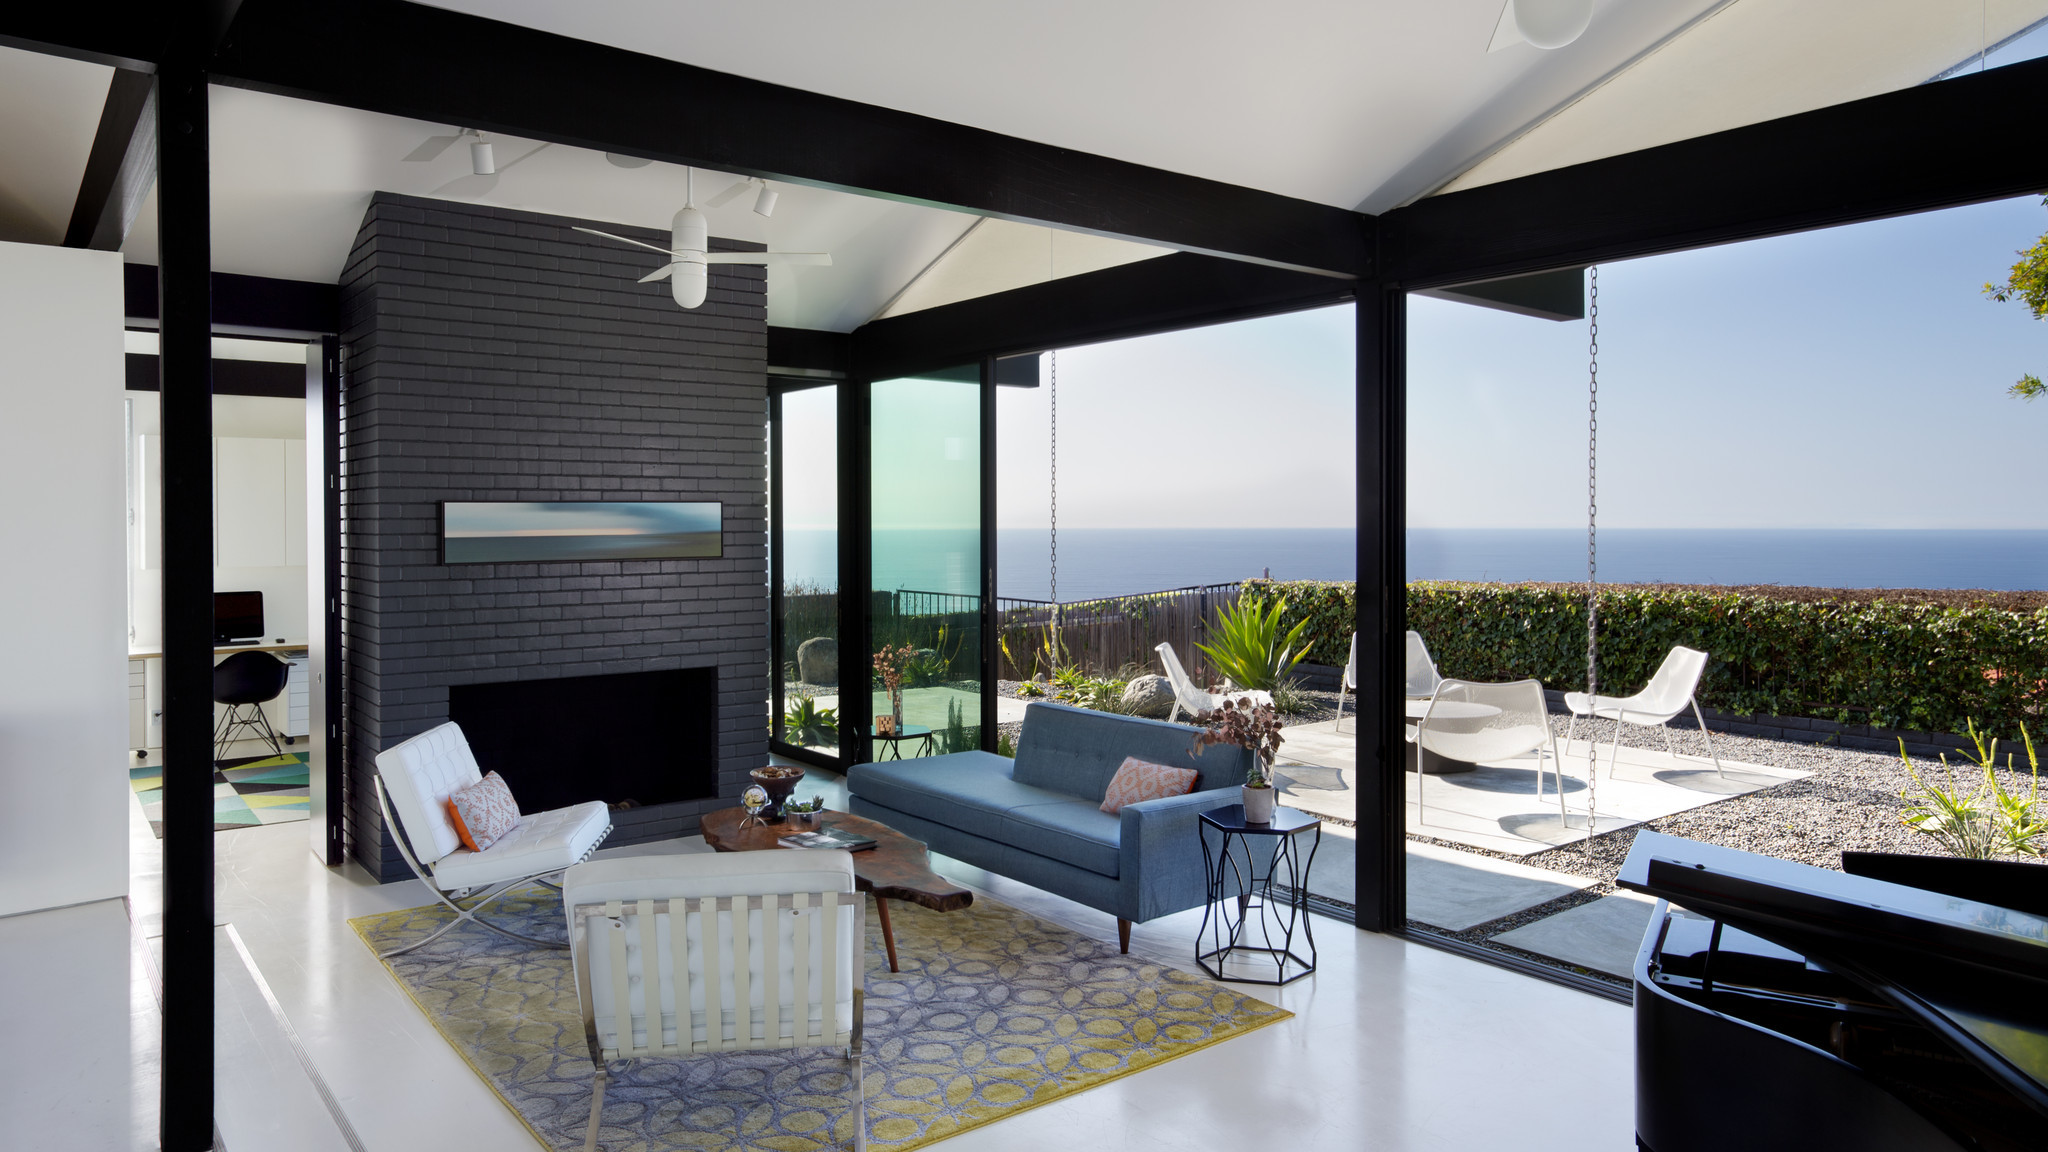 Home Of The Day: Pierre Koenig Reinterpreted In Rancho Palos Verdes   Daily  Press